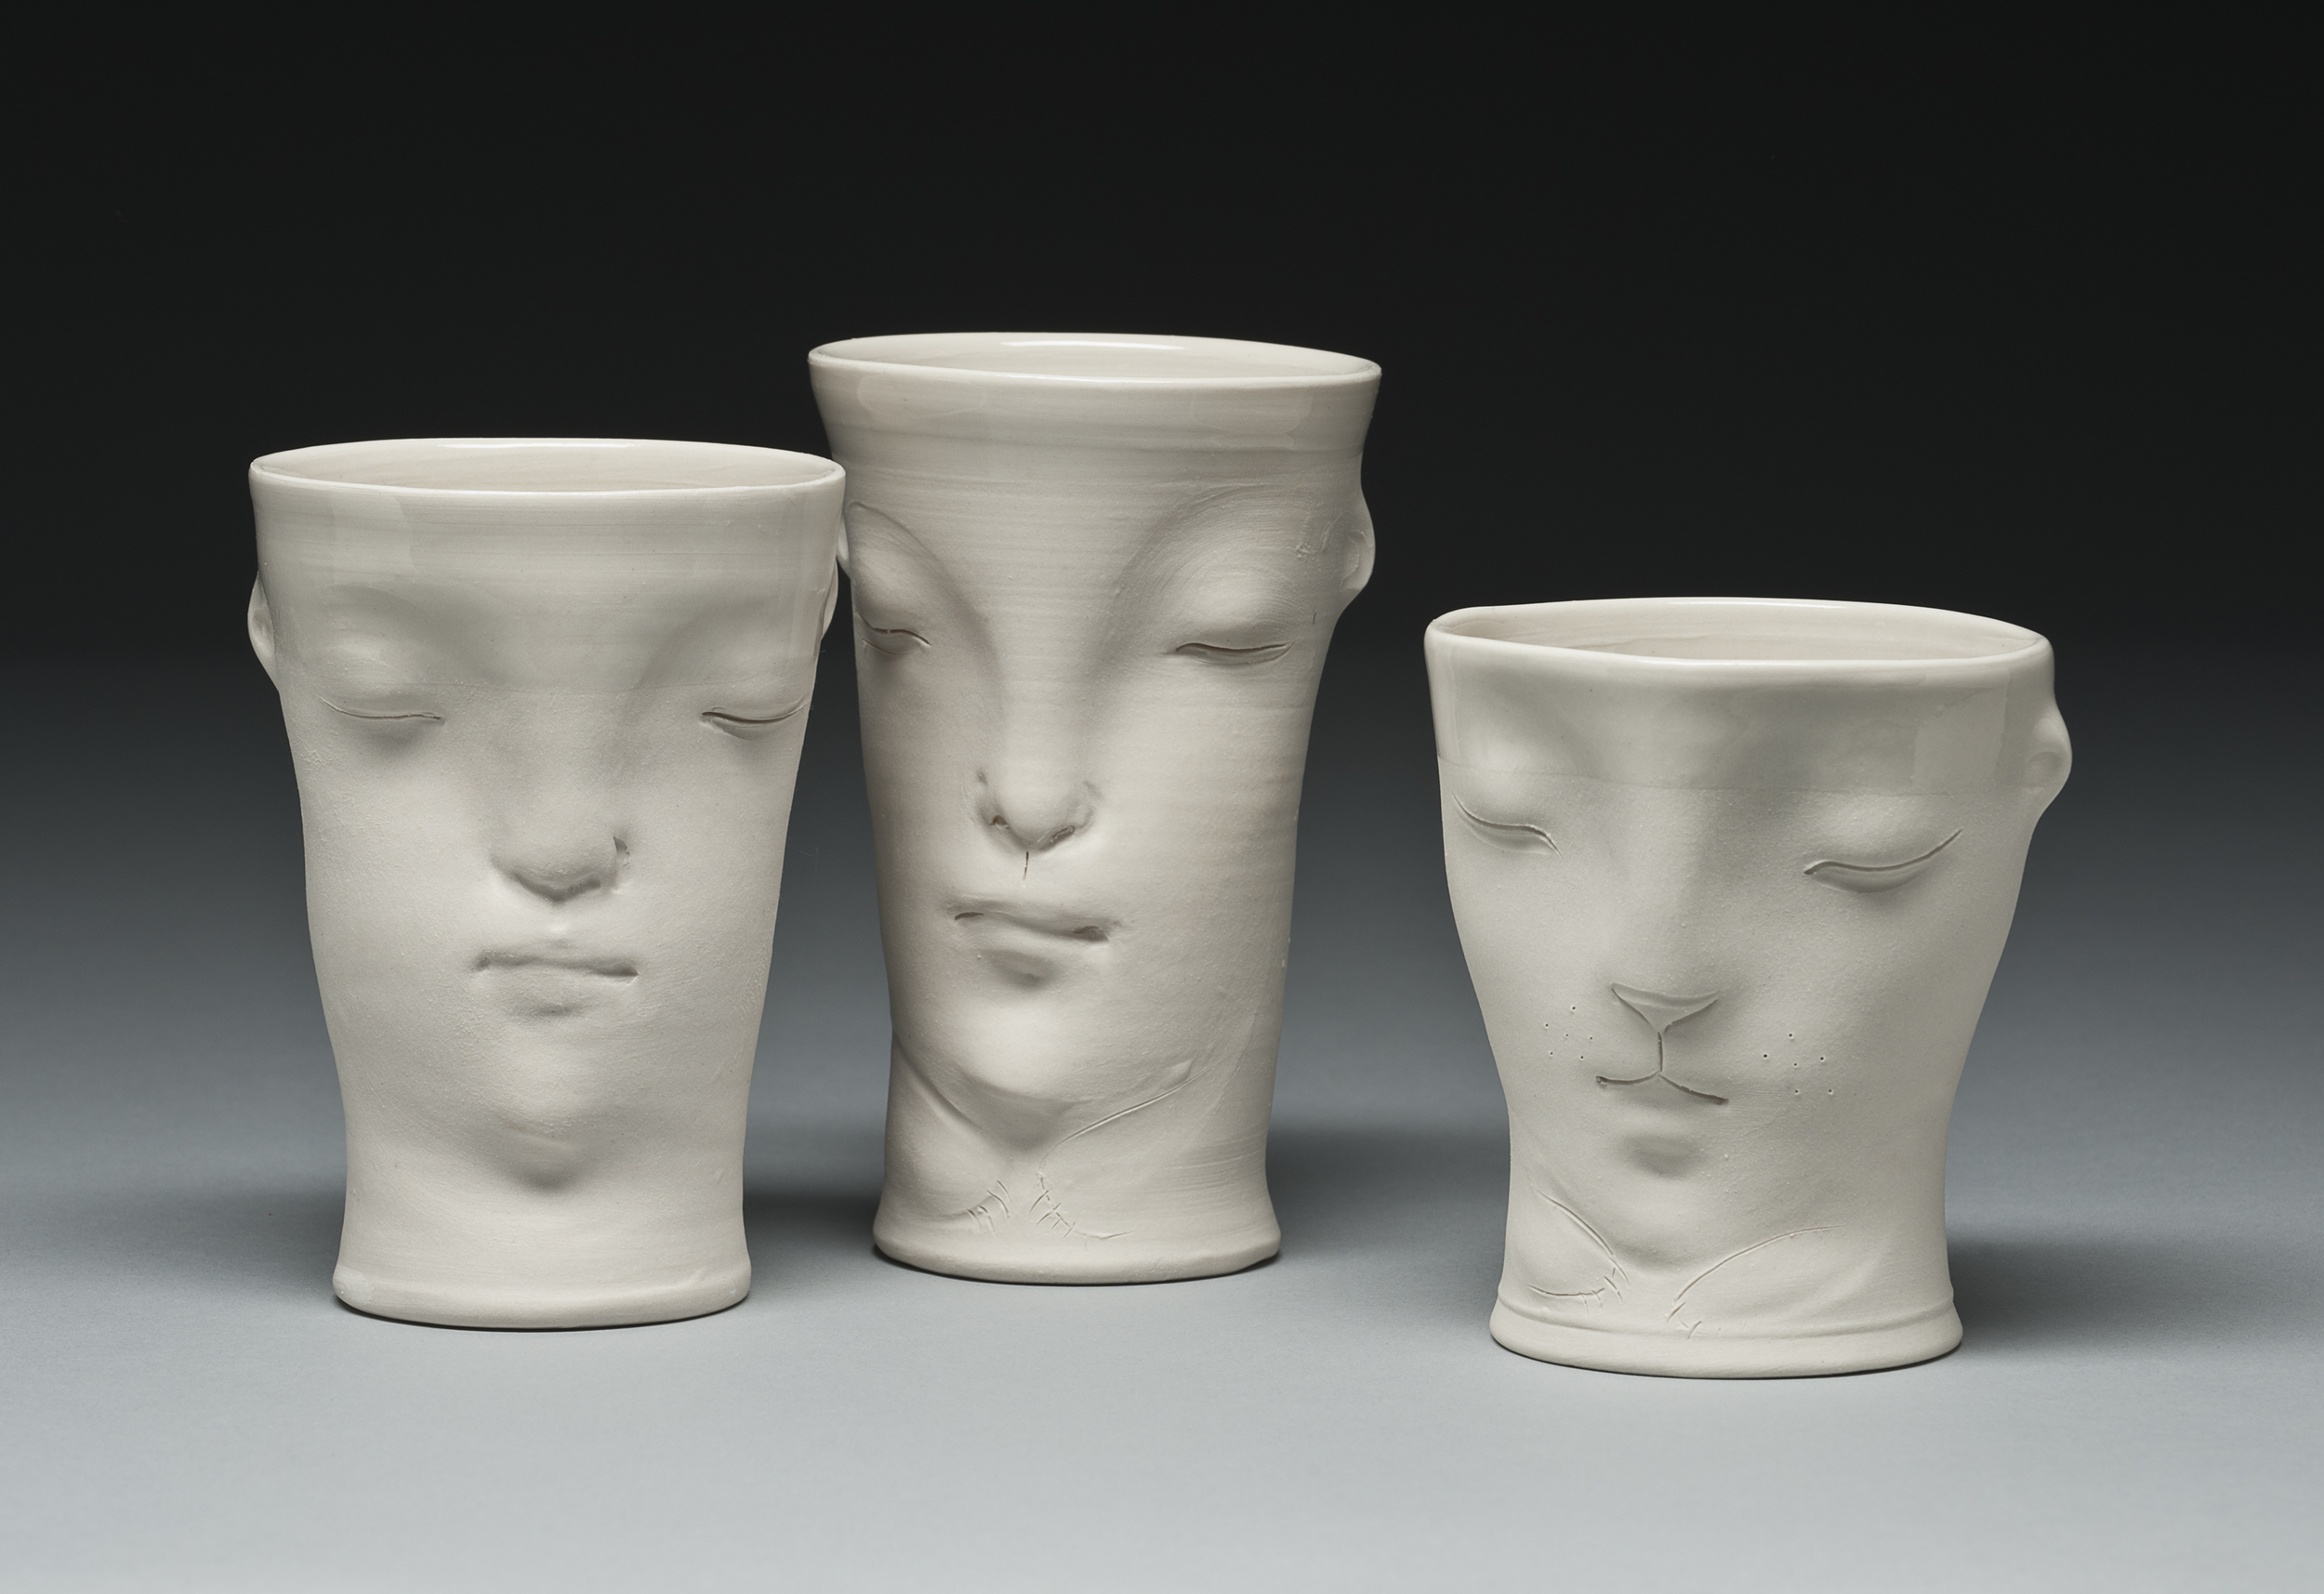 Face cups